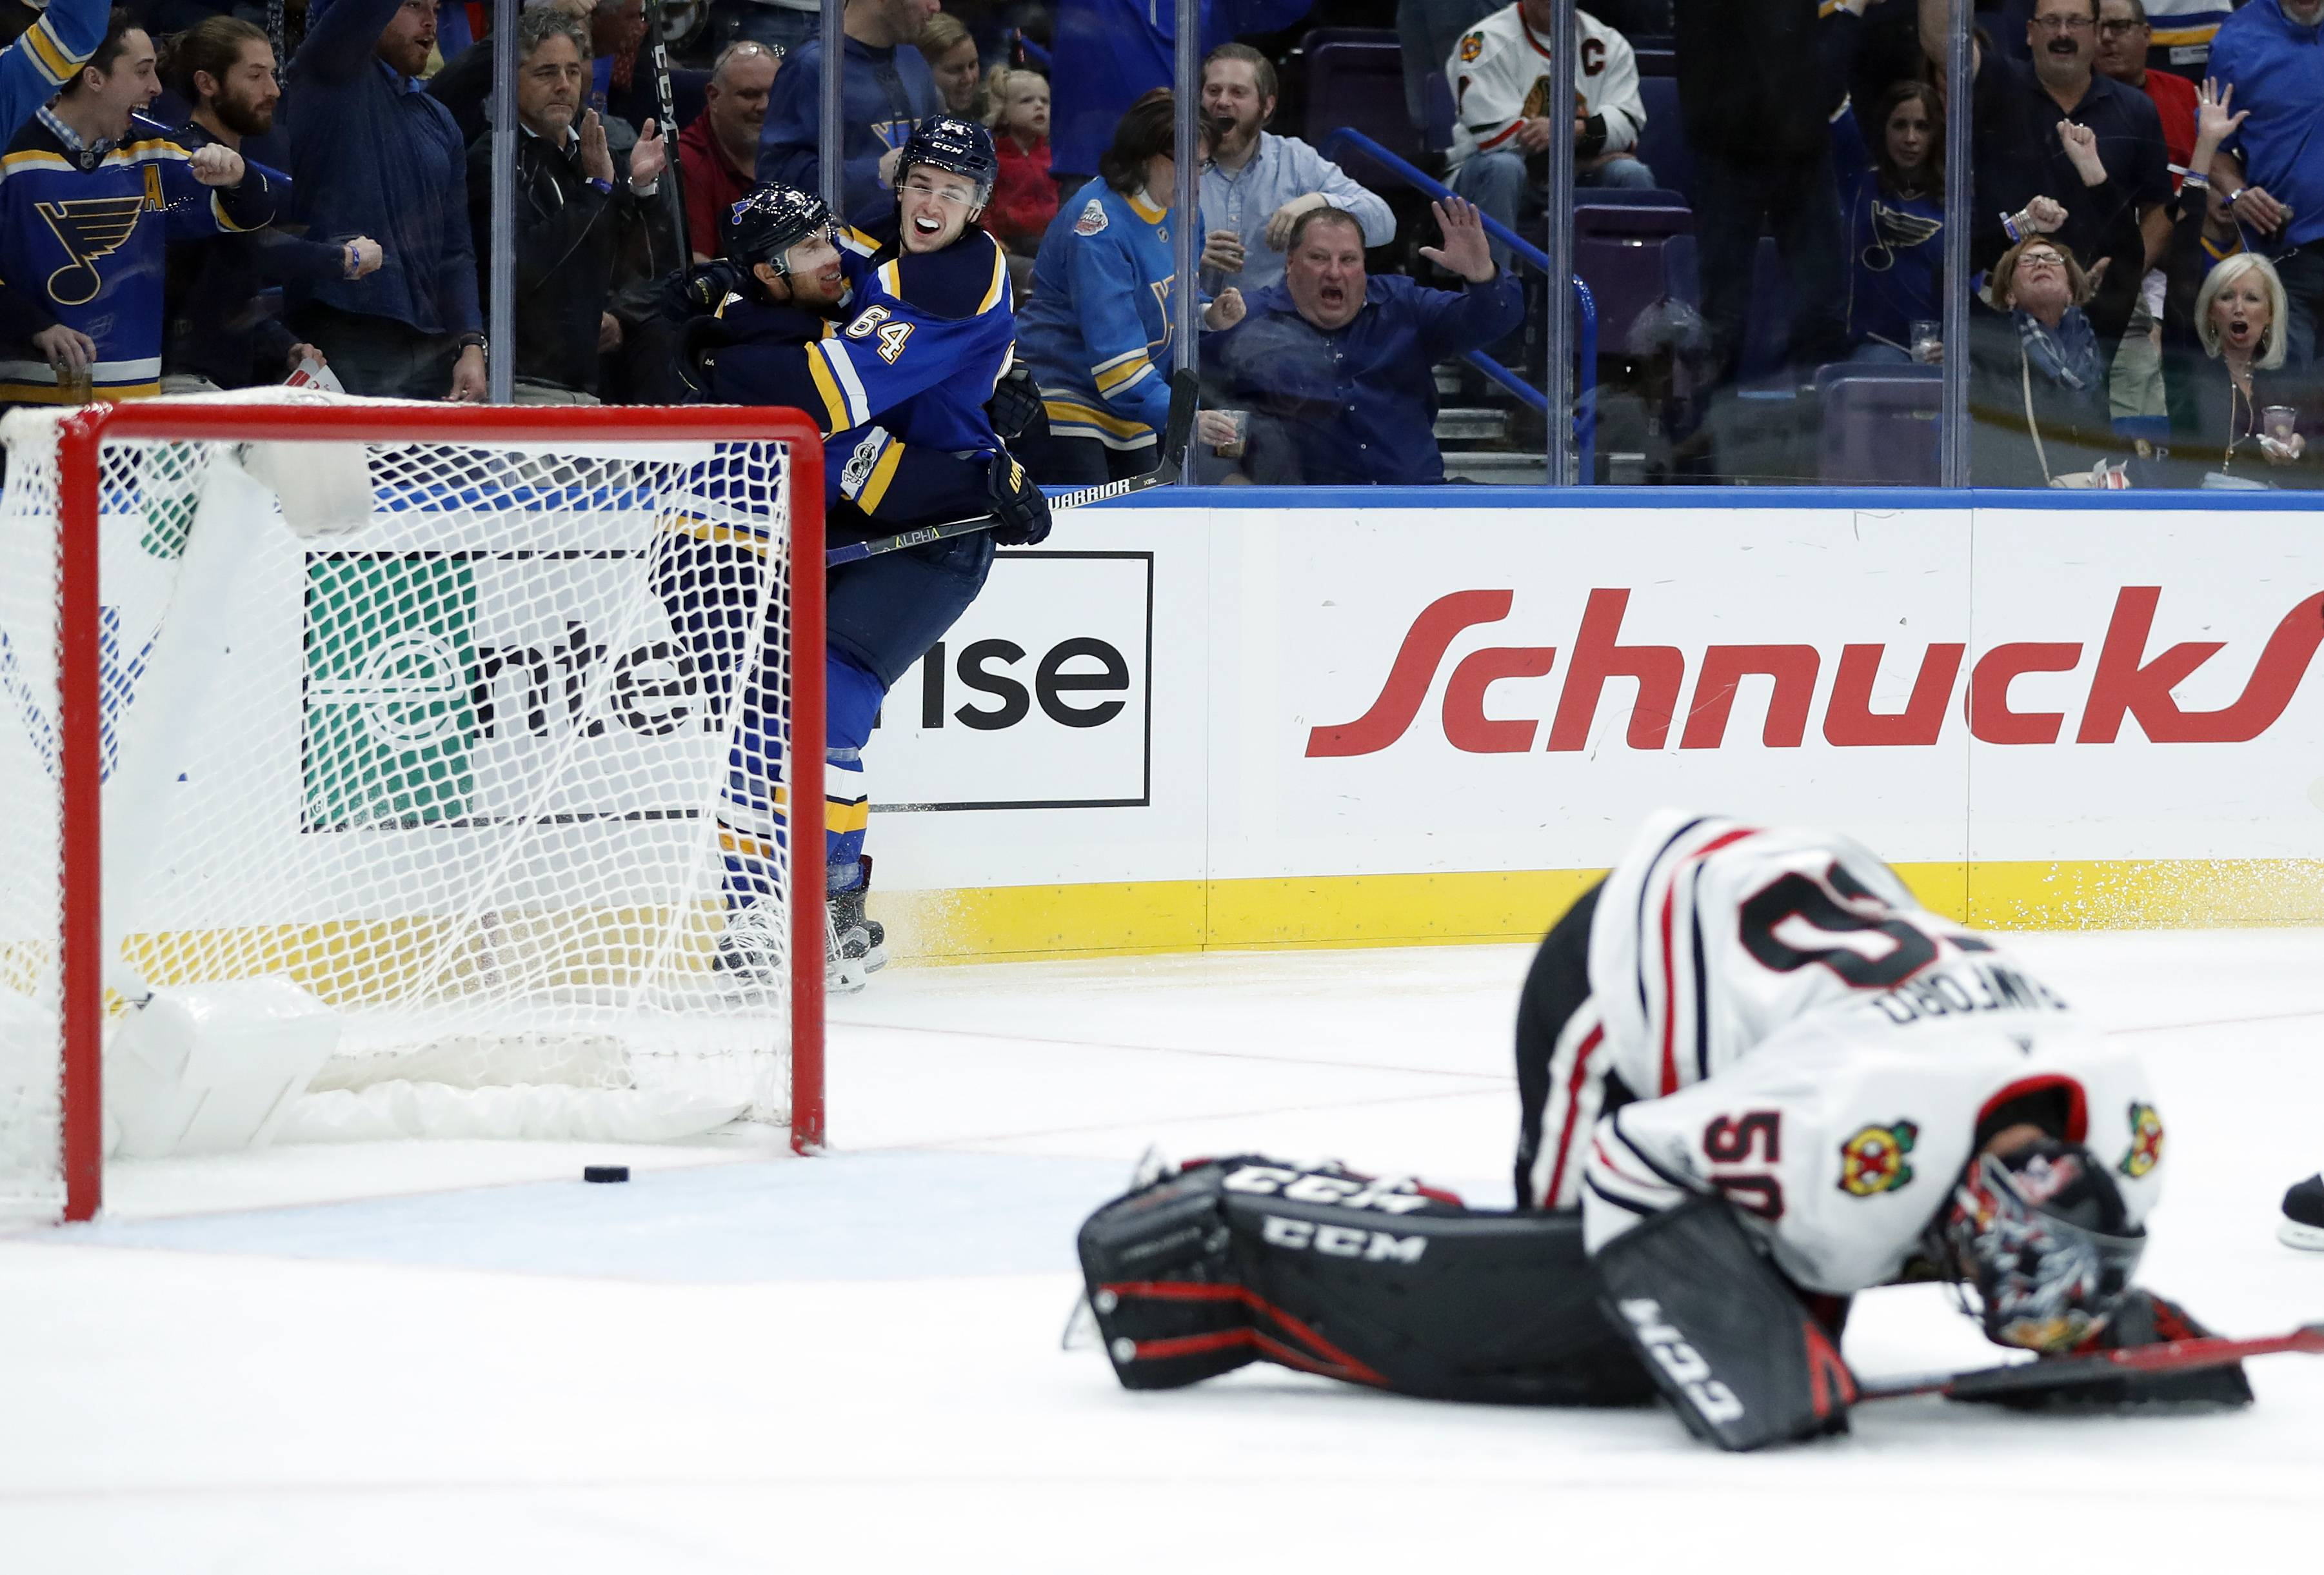 Chicago Blackhawks goalie Corey Crawford, right, reacts as St. Louis Blues' Jaden Schwartz, left, is congratulated by Sammy Blais after scoring during the second period of an NHL hockey game Wednesday, Oct. 18, 2017, in St. Louis. (AP Photo/Jeff Roberson)